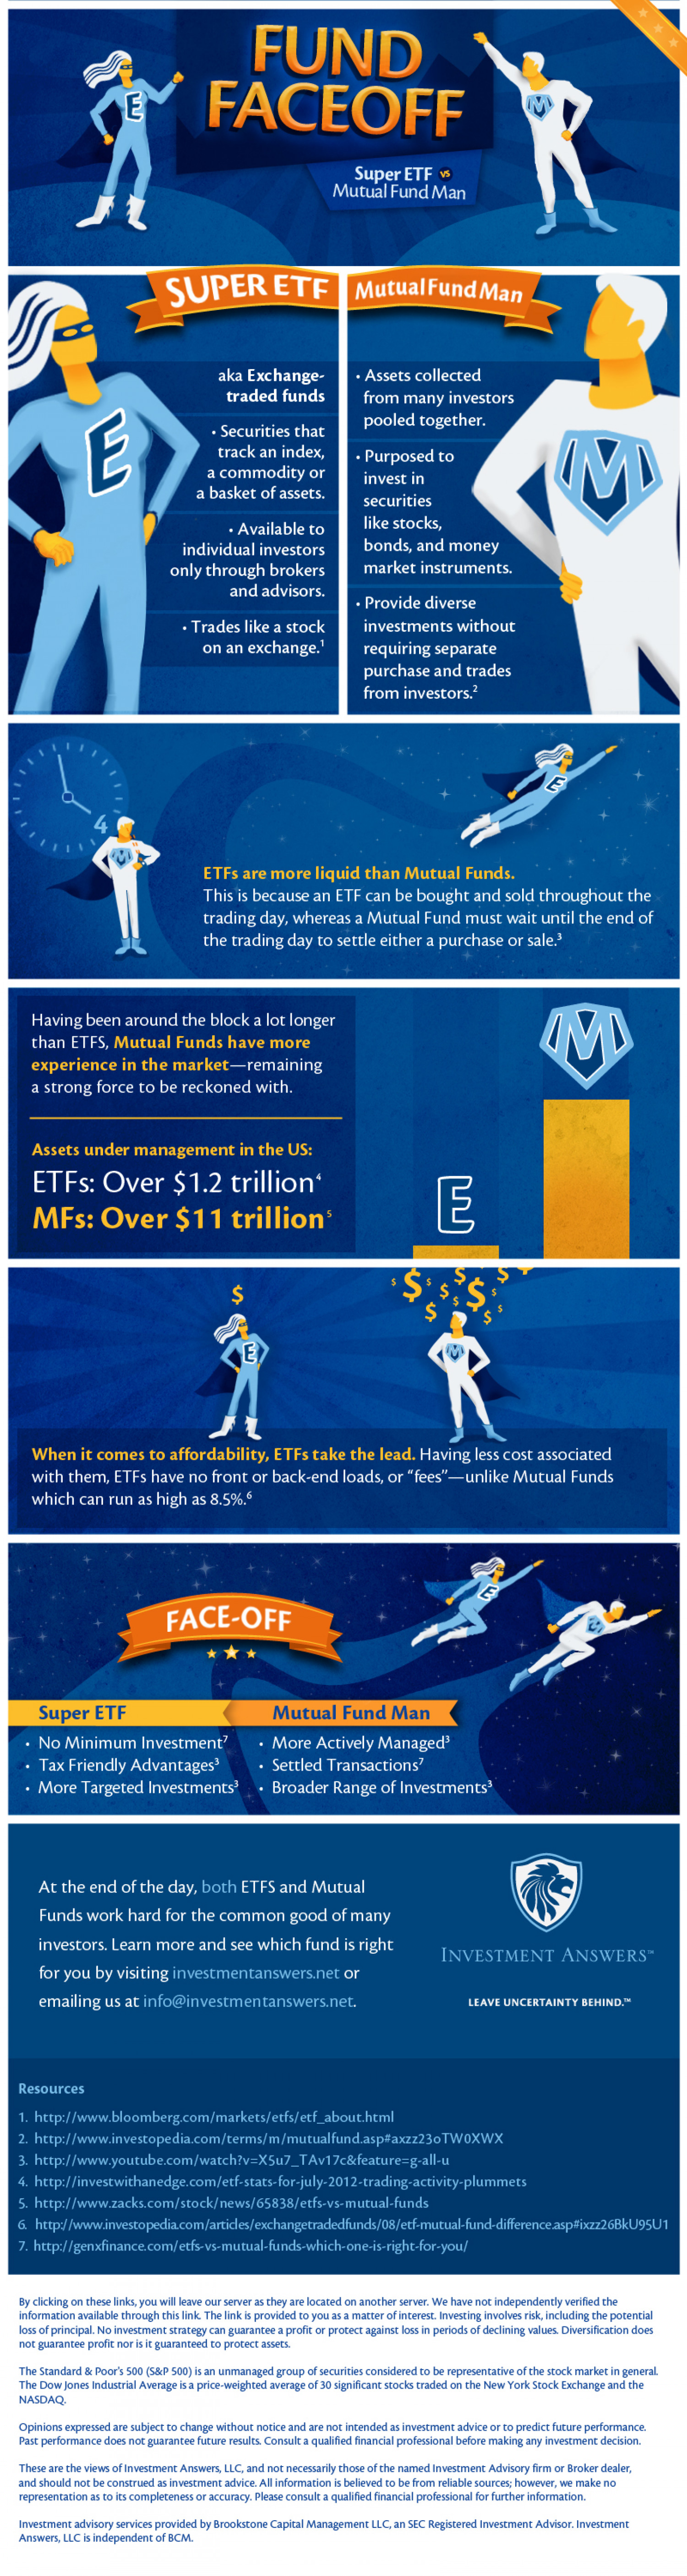 Fund Faceoff Infographic